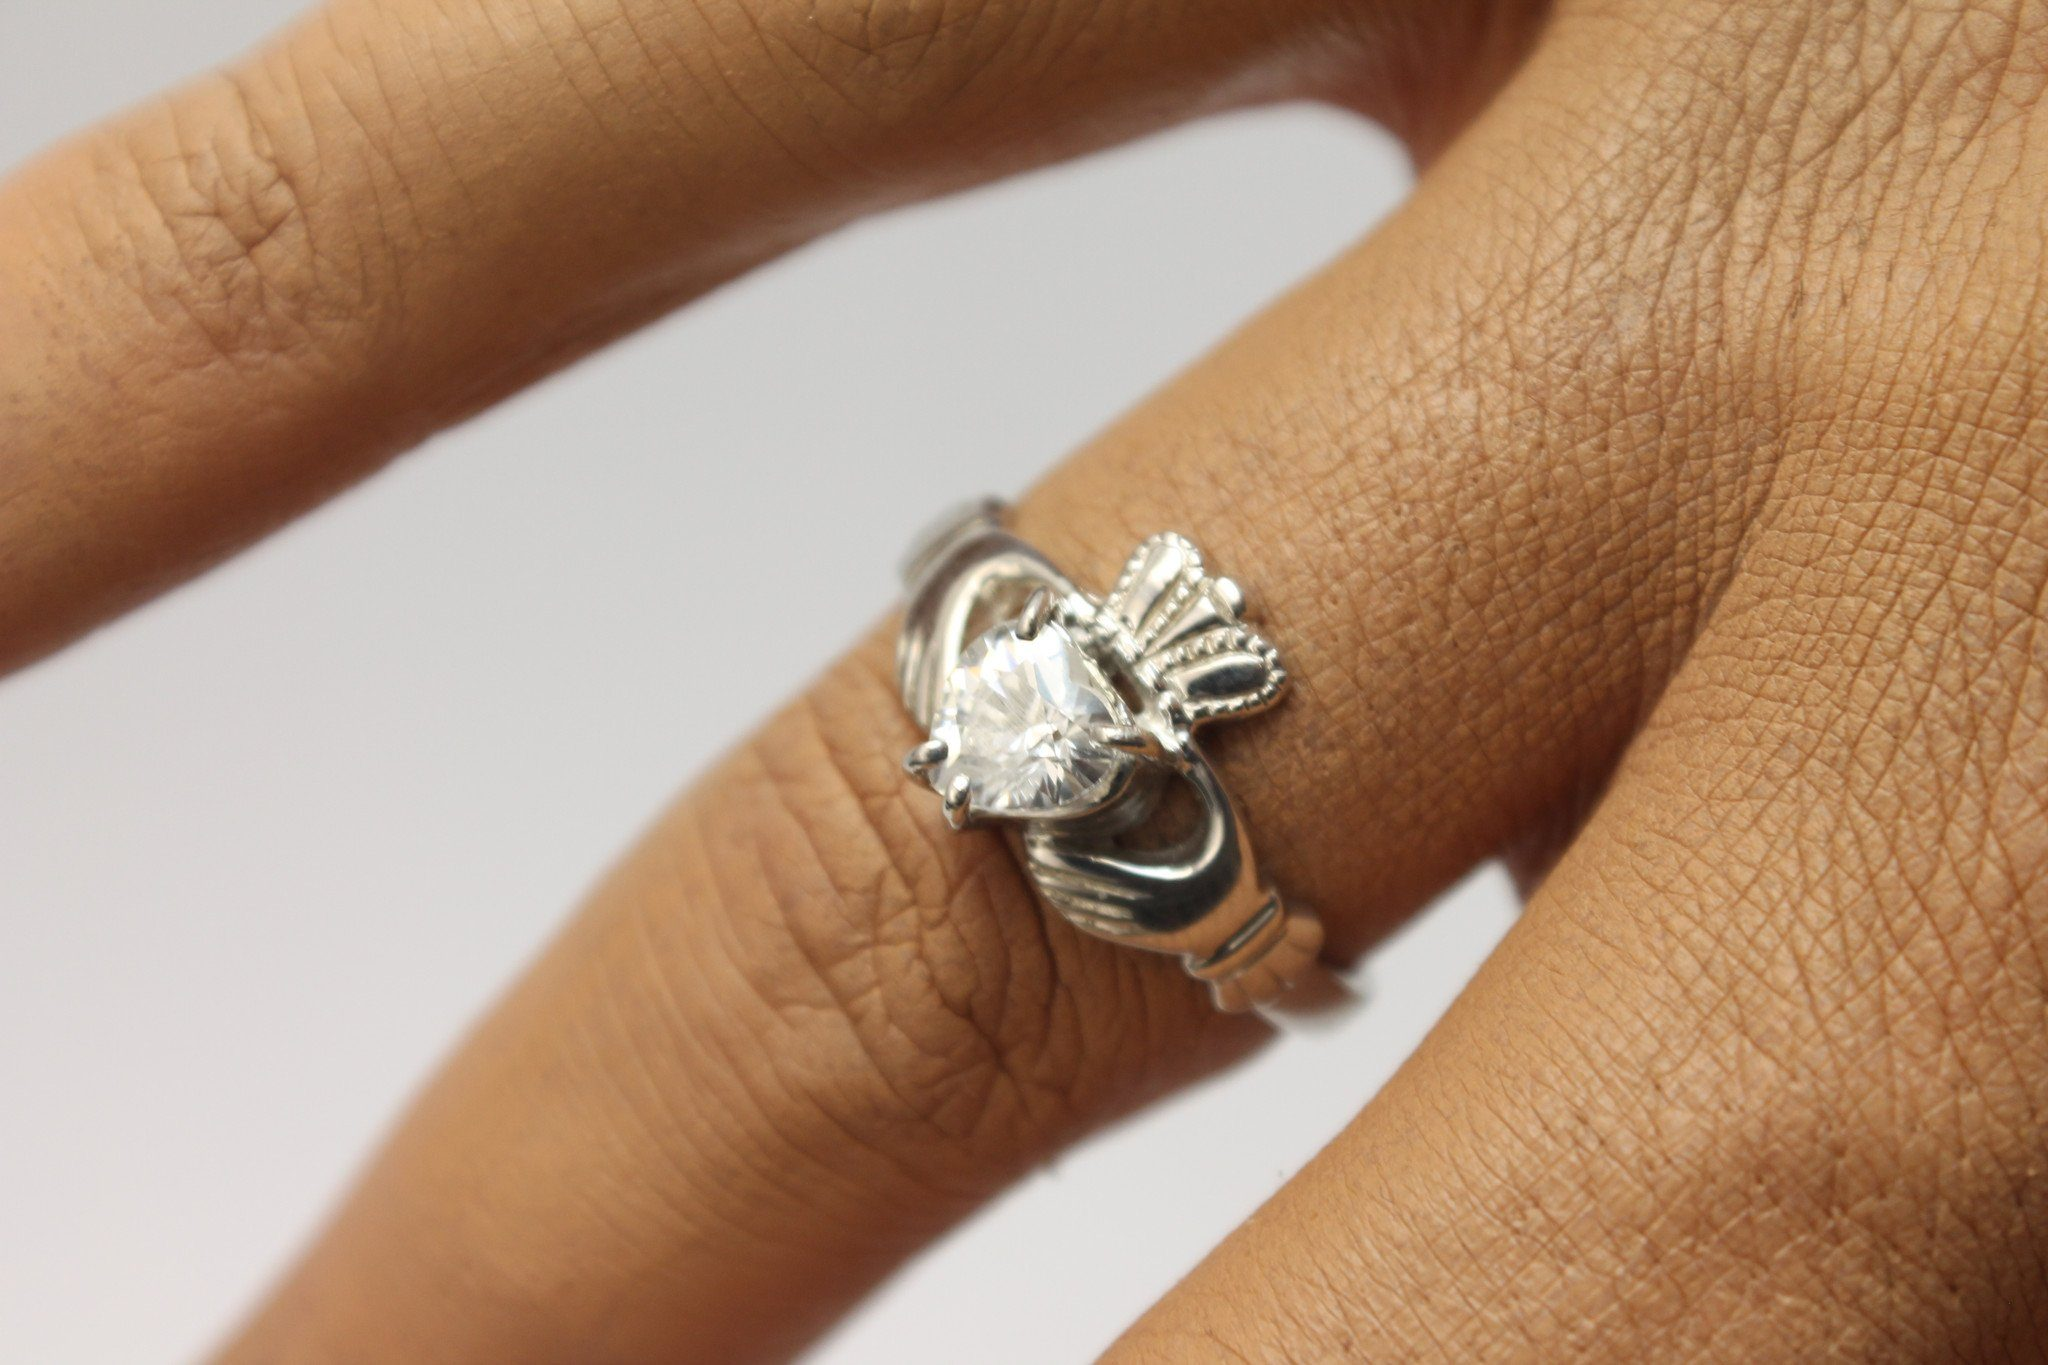 90d64cc70 Jewelry - Claddagh Ring, Ladies Silver Claddagh Ring, Set With Cubic  Zirconia Stone.